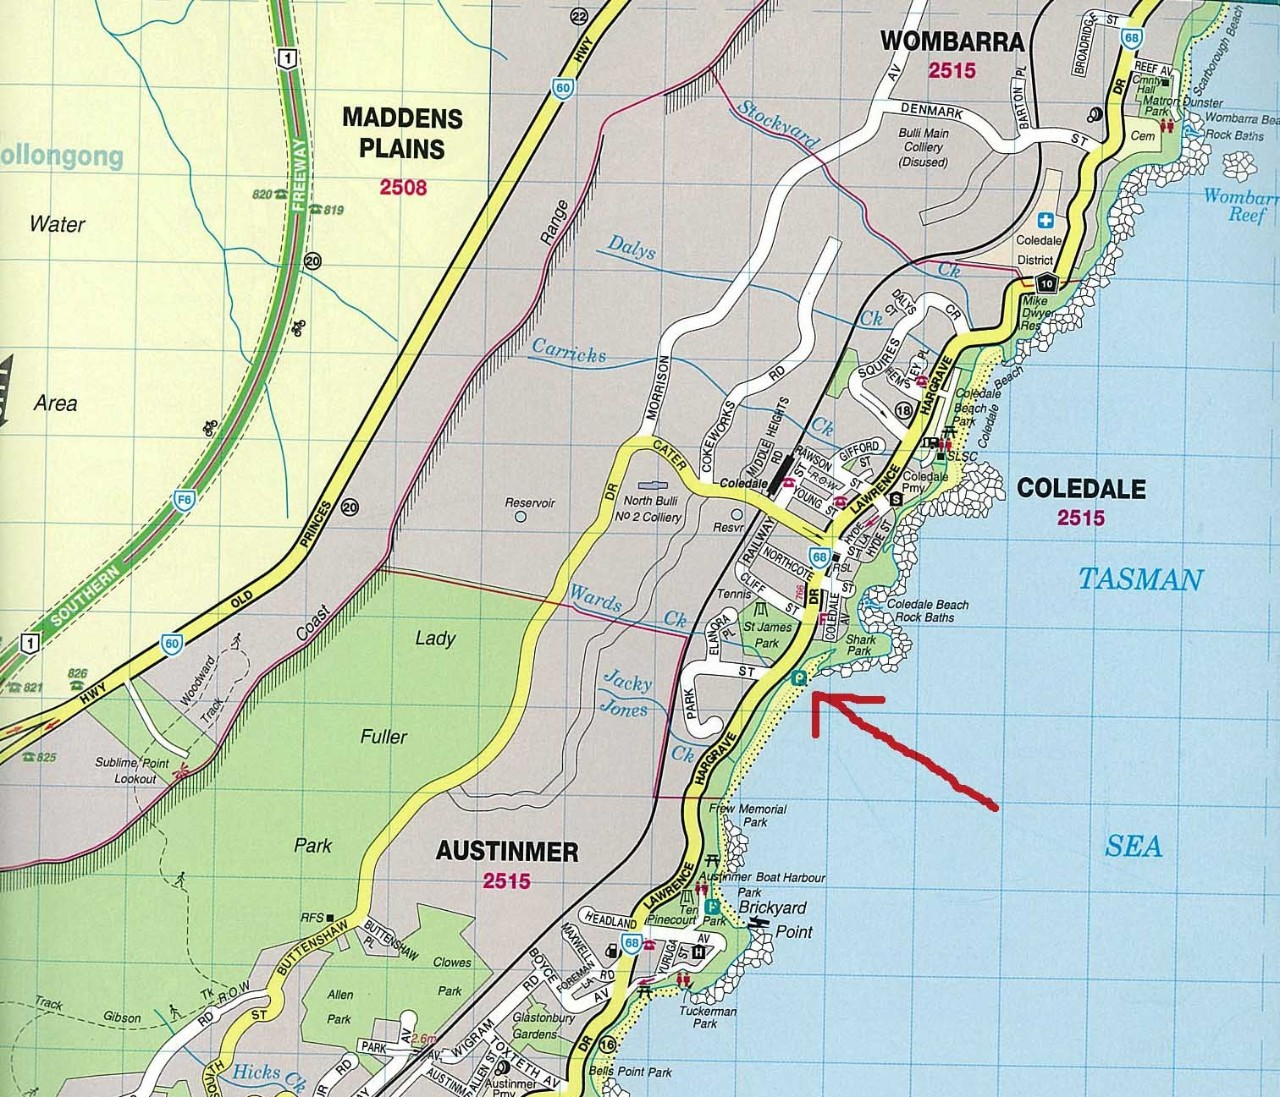 A map of Shark Park in Austinmer.